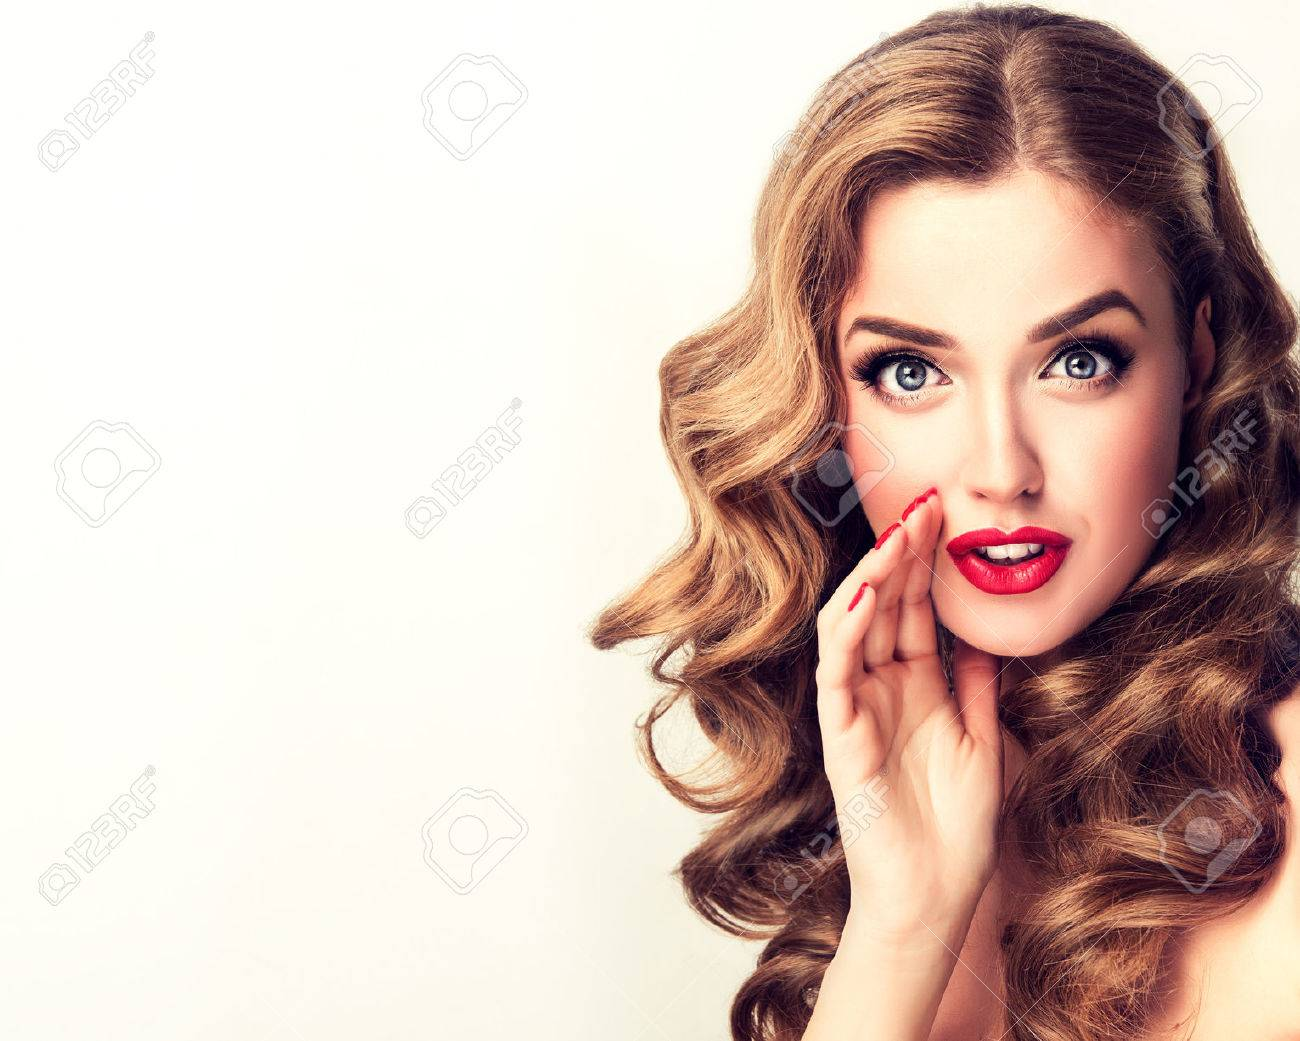 Beautiful girl with bright makeup and curly hair telling a secret. Expressive facial expressions. - 66637285